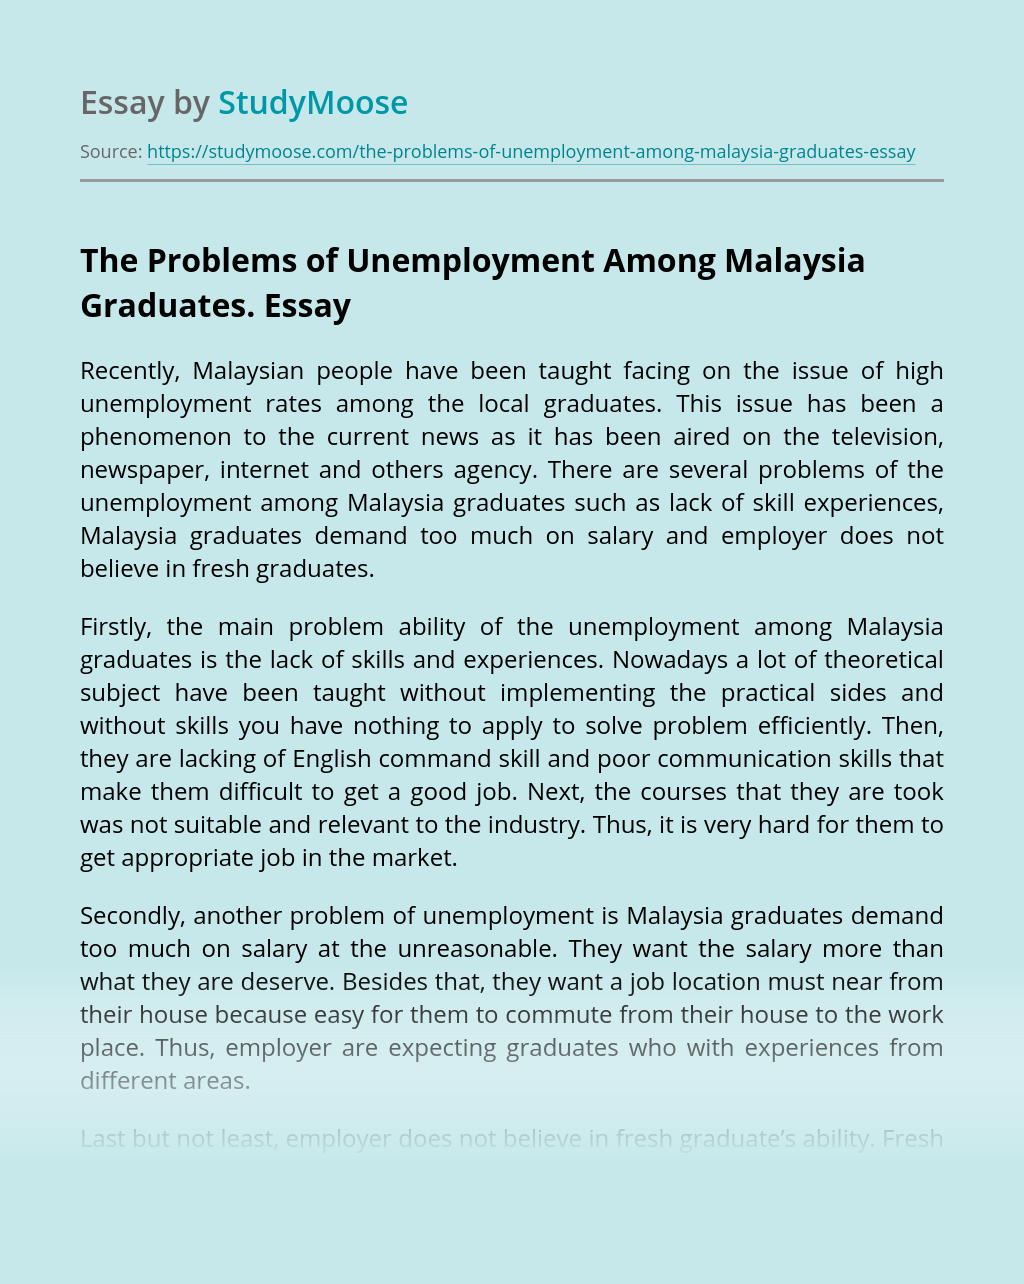 The Problems of Unemployment Among Malaysia Graduates.